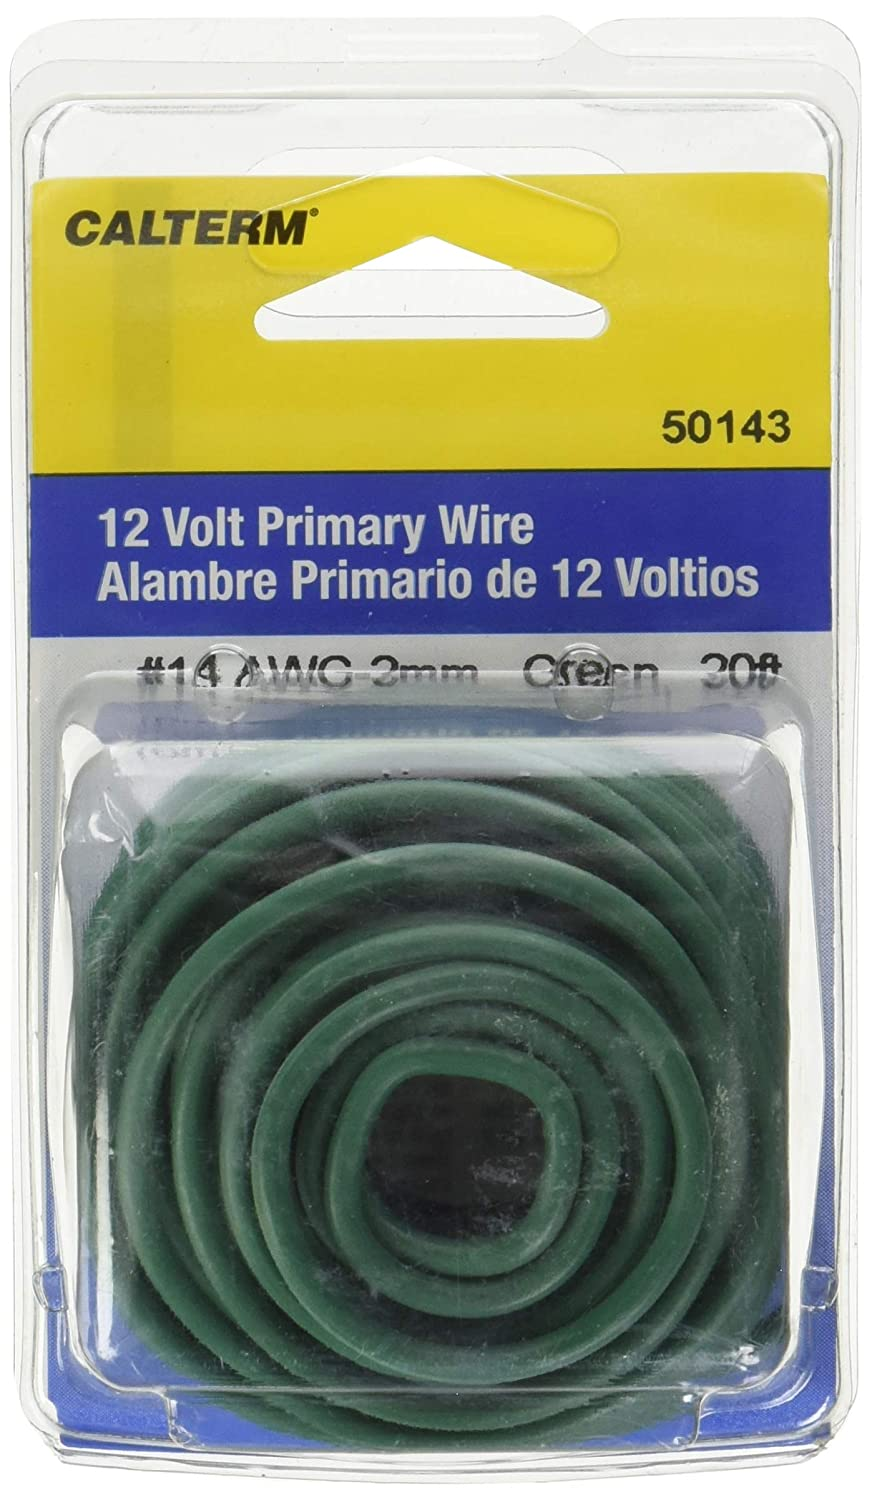 Amazon.com: Calterm 50143 Electrical Primary Wire, 20 ft., 14 AWG, Green: Automotive